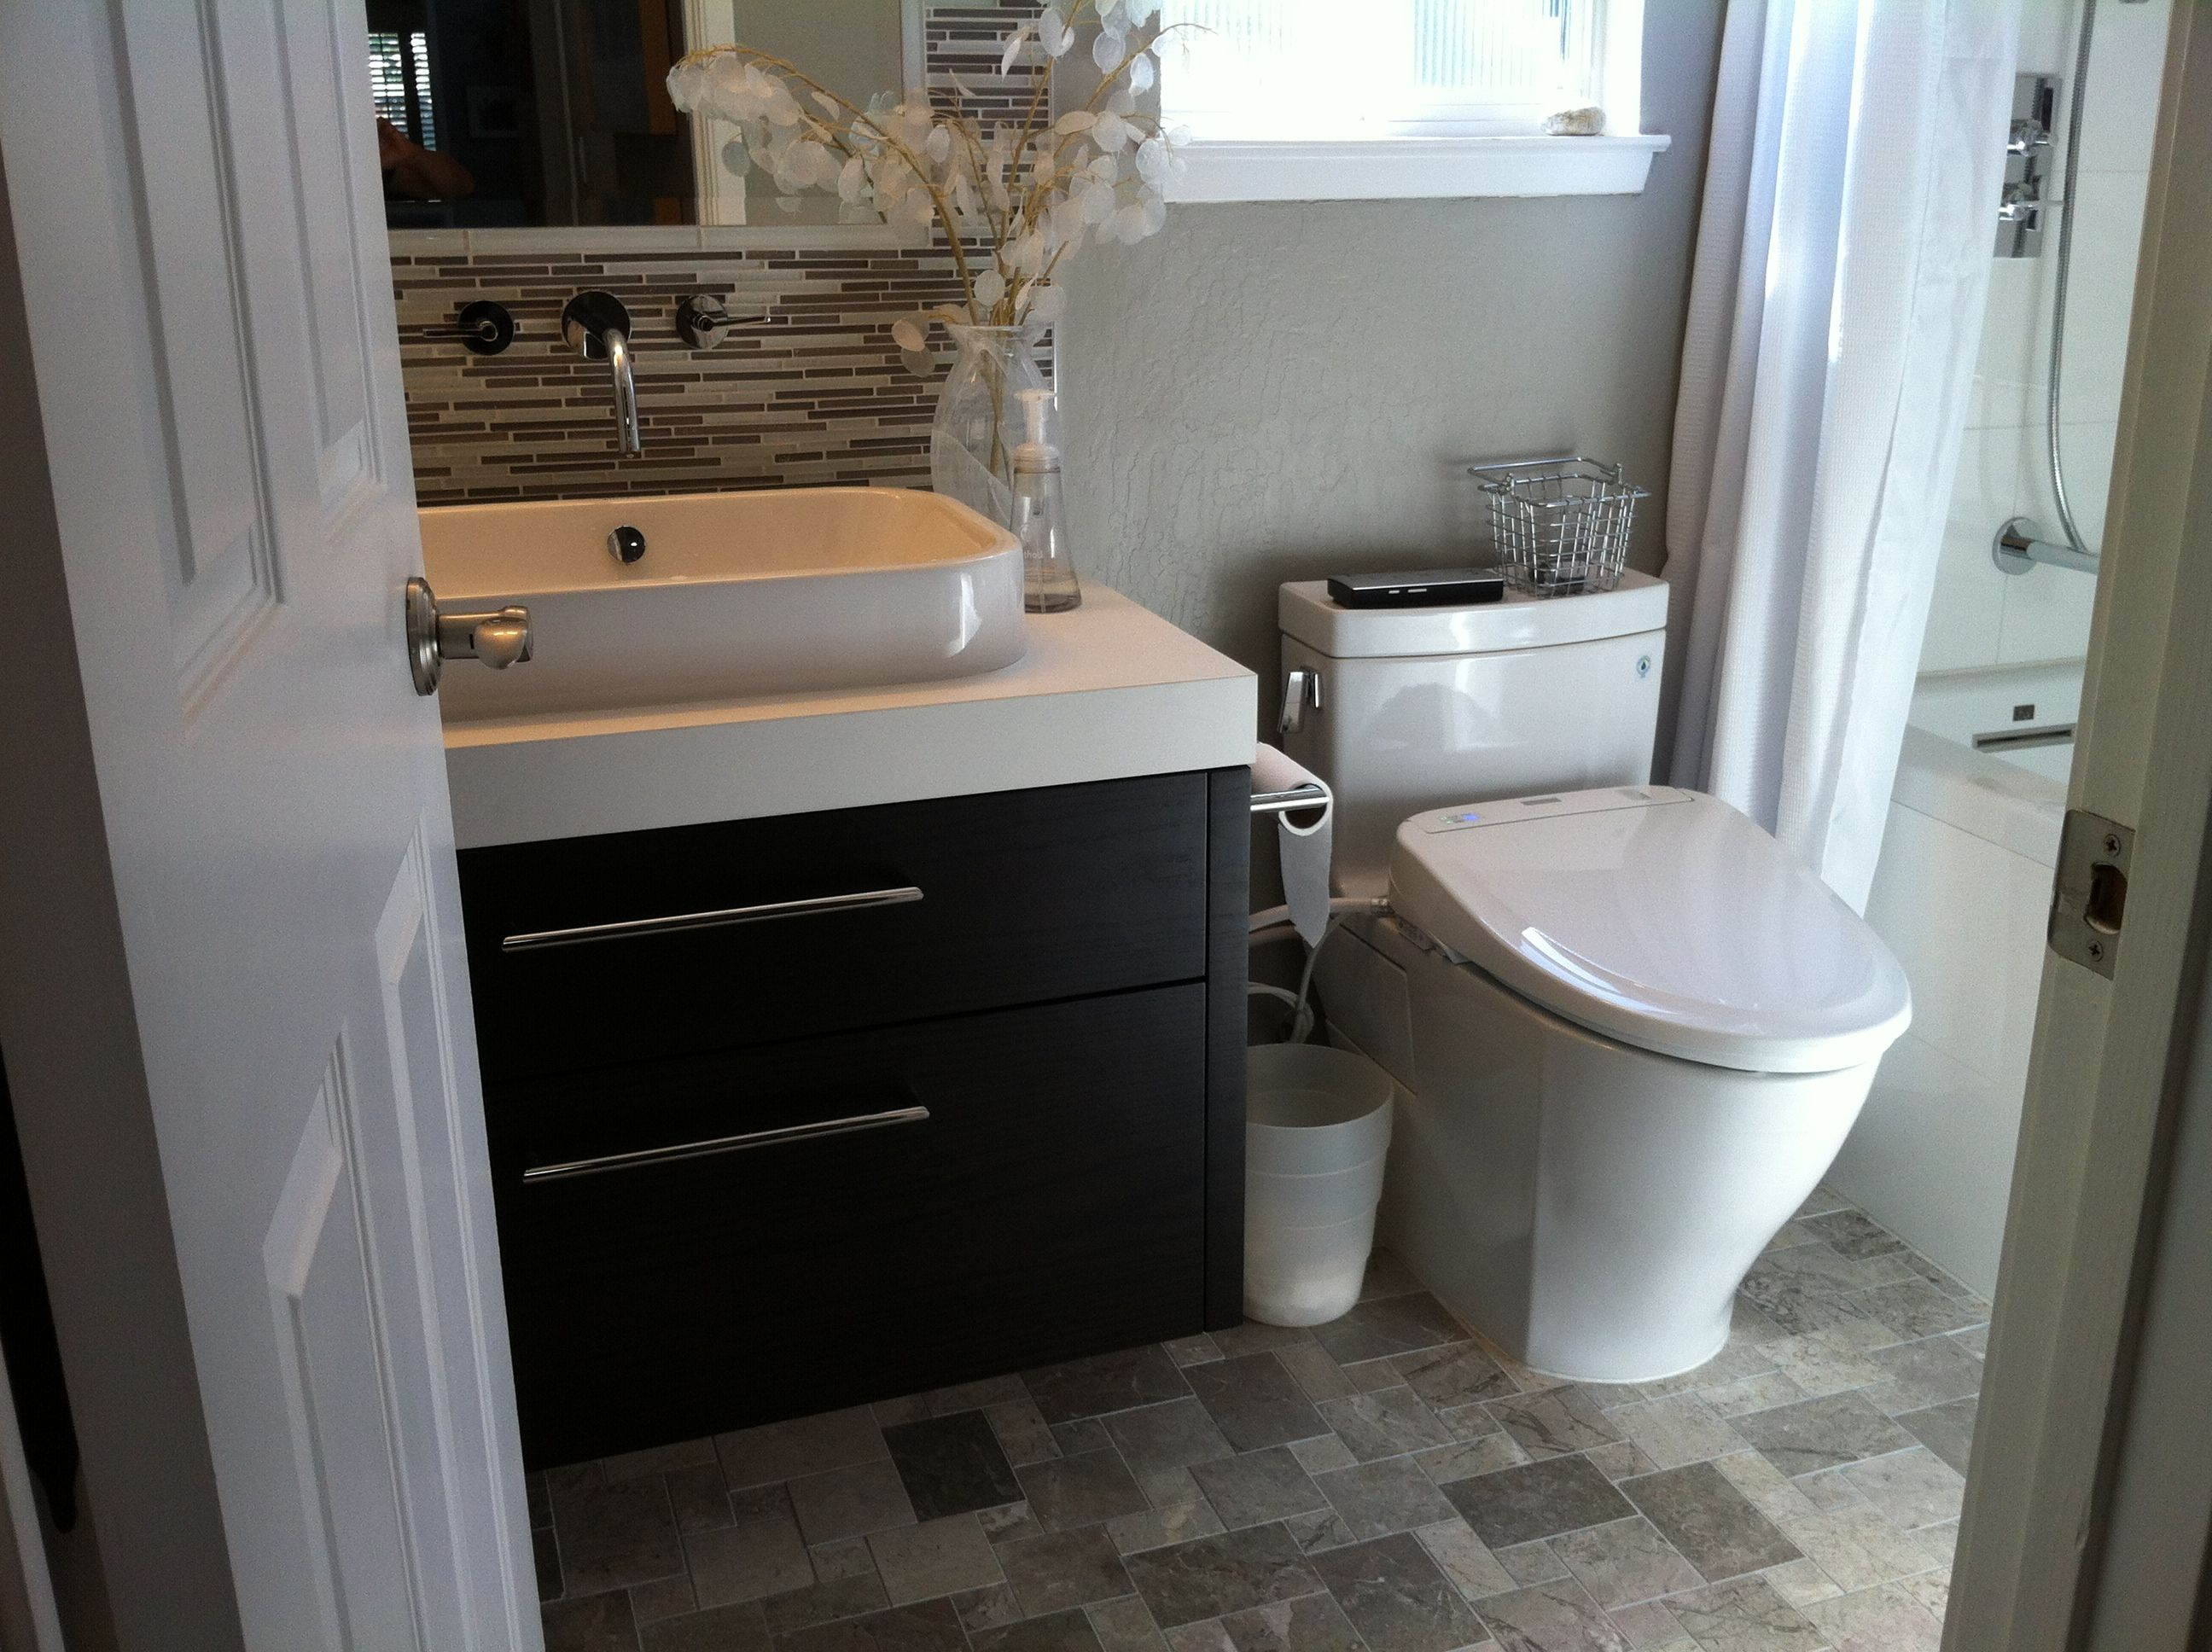 Guest bath remodel custom vanity toto Legato toilet and Toto